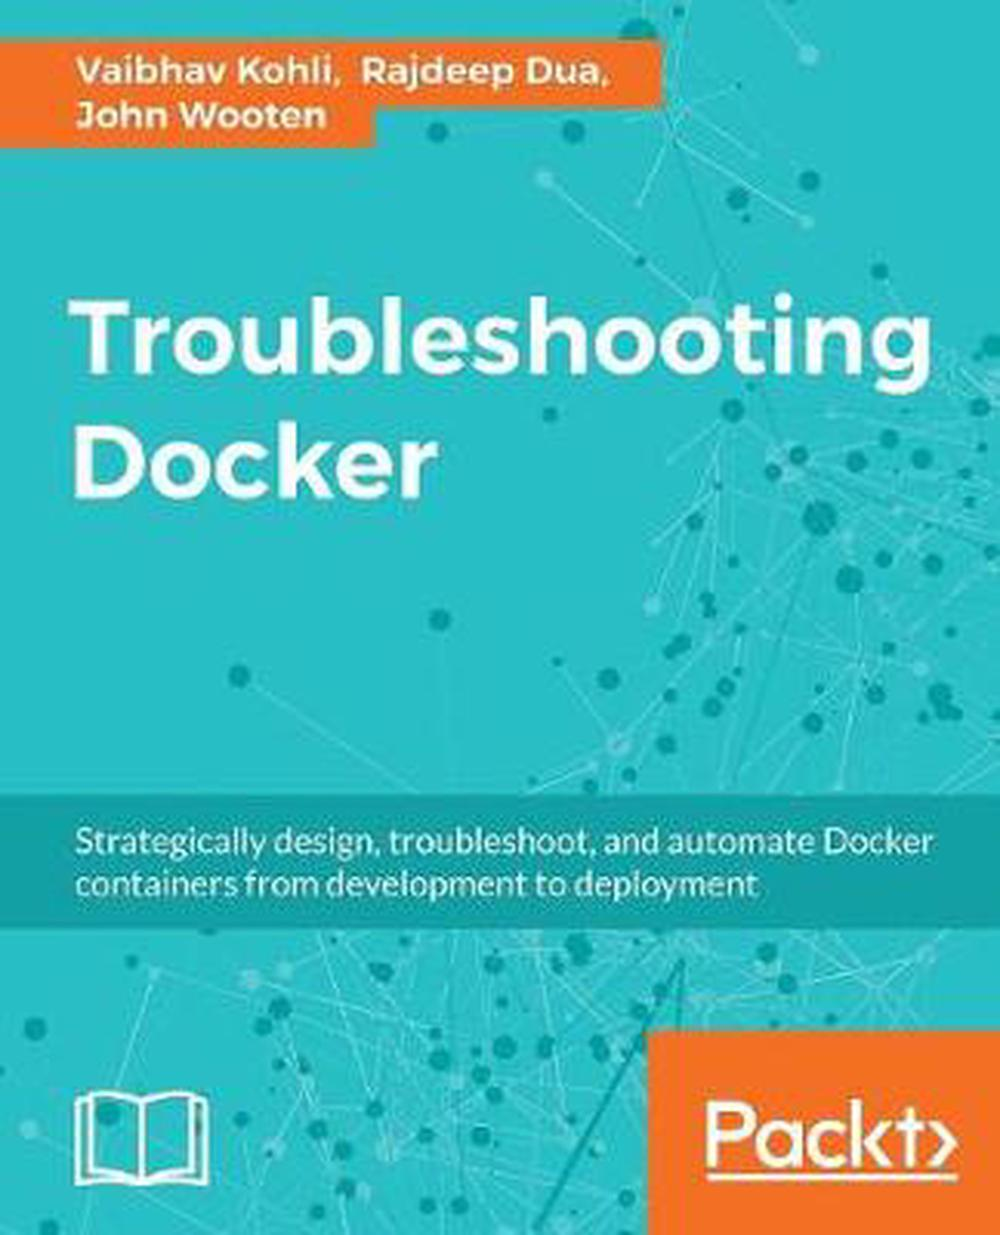 Details about Troubleshooting Docker by Rajdeep Dua (English) Paperback  Book Free Shipping!